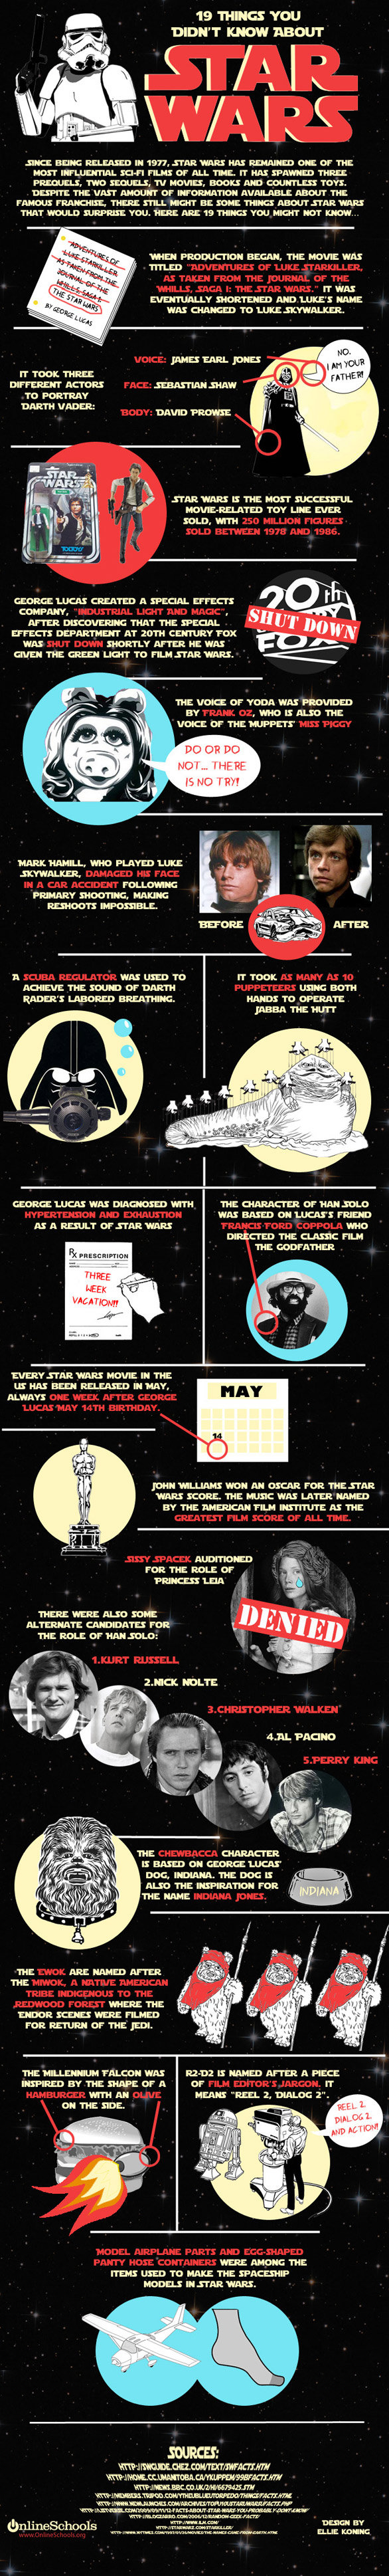 """19 things you didnt know about star wars. im new to this site and i thought you guys might like this. 1 """" THINGS YOU DIDN' T mow ABOUT sic: antic gamma m ,: nua"""